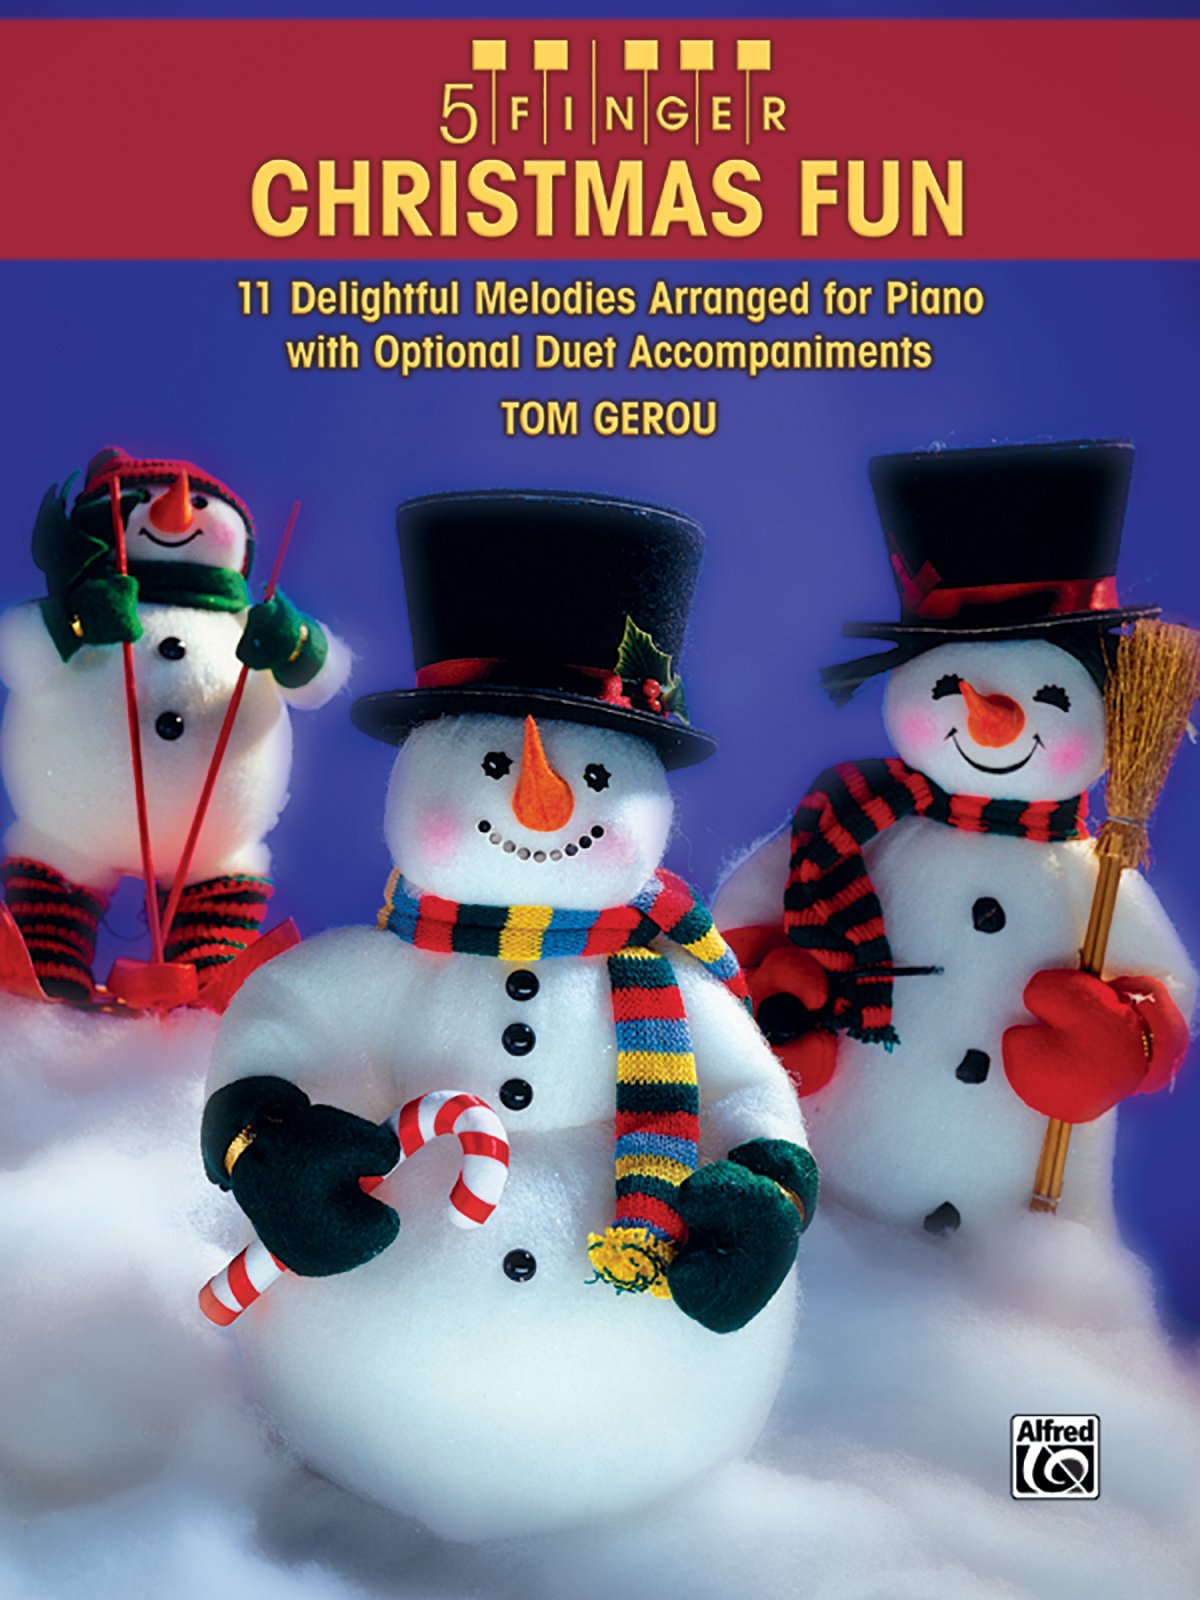 5 Finger Christmas Fun: 11 Delightful Melodies Arranged for Piano with Optional Duet Accompaniments ebook